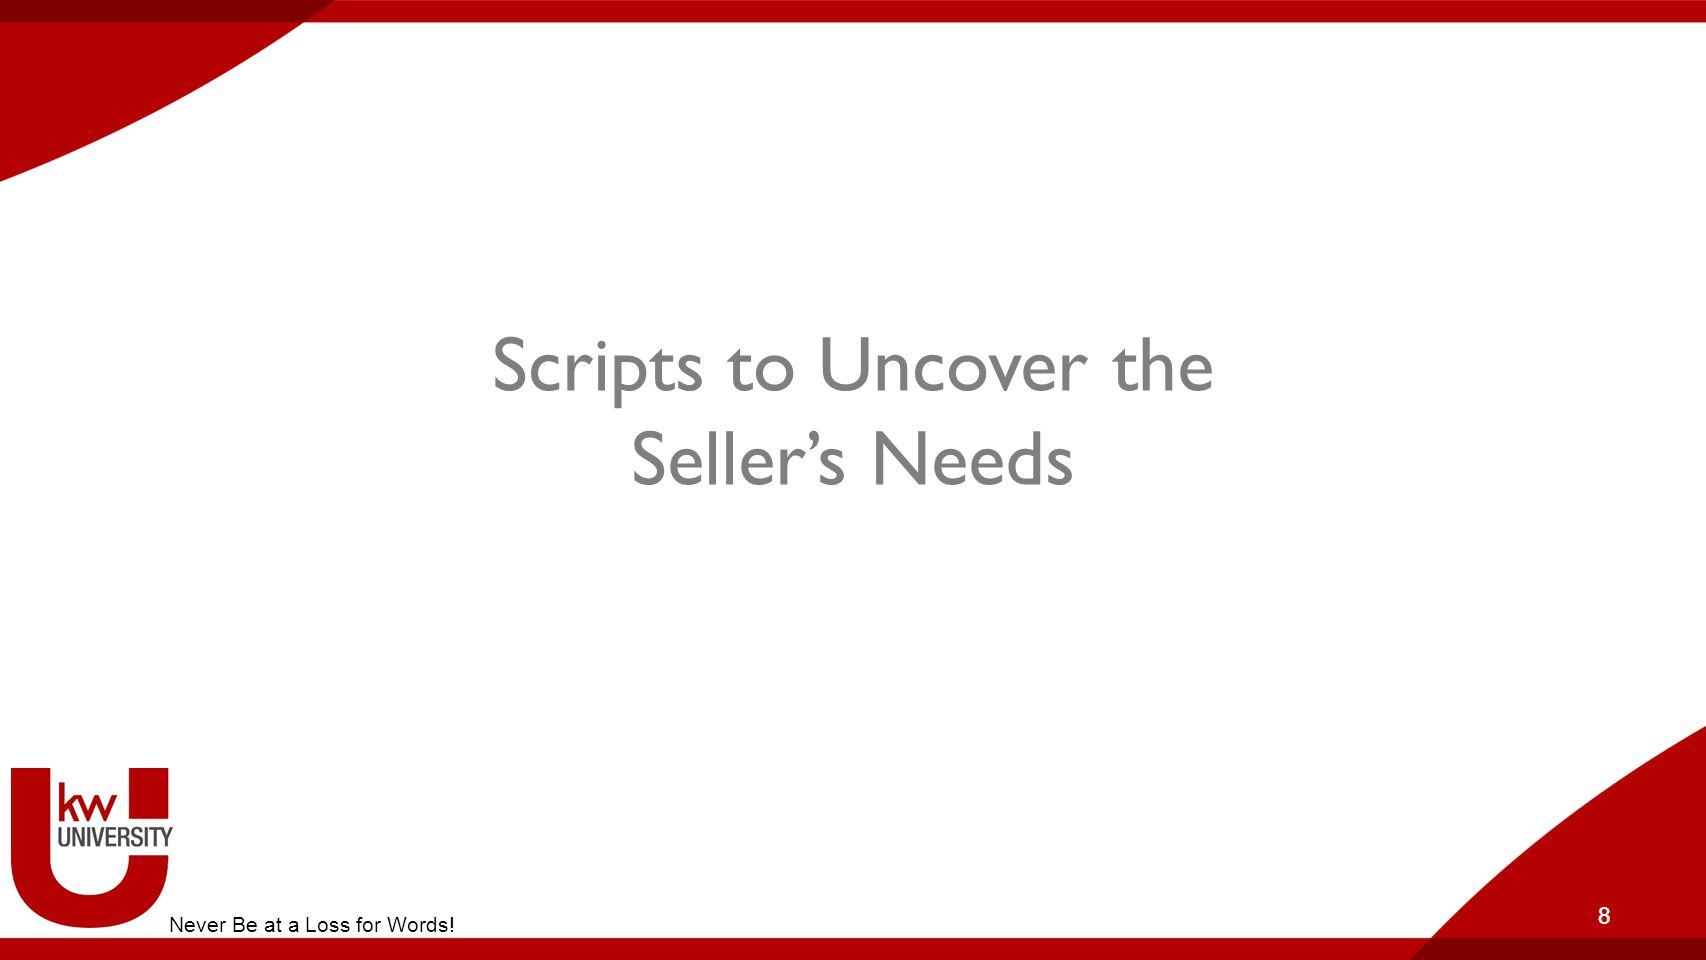 Scripts to Uncover the Seller's Needs